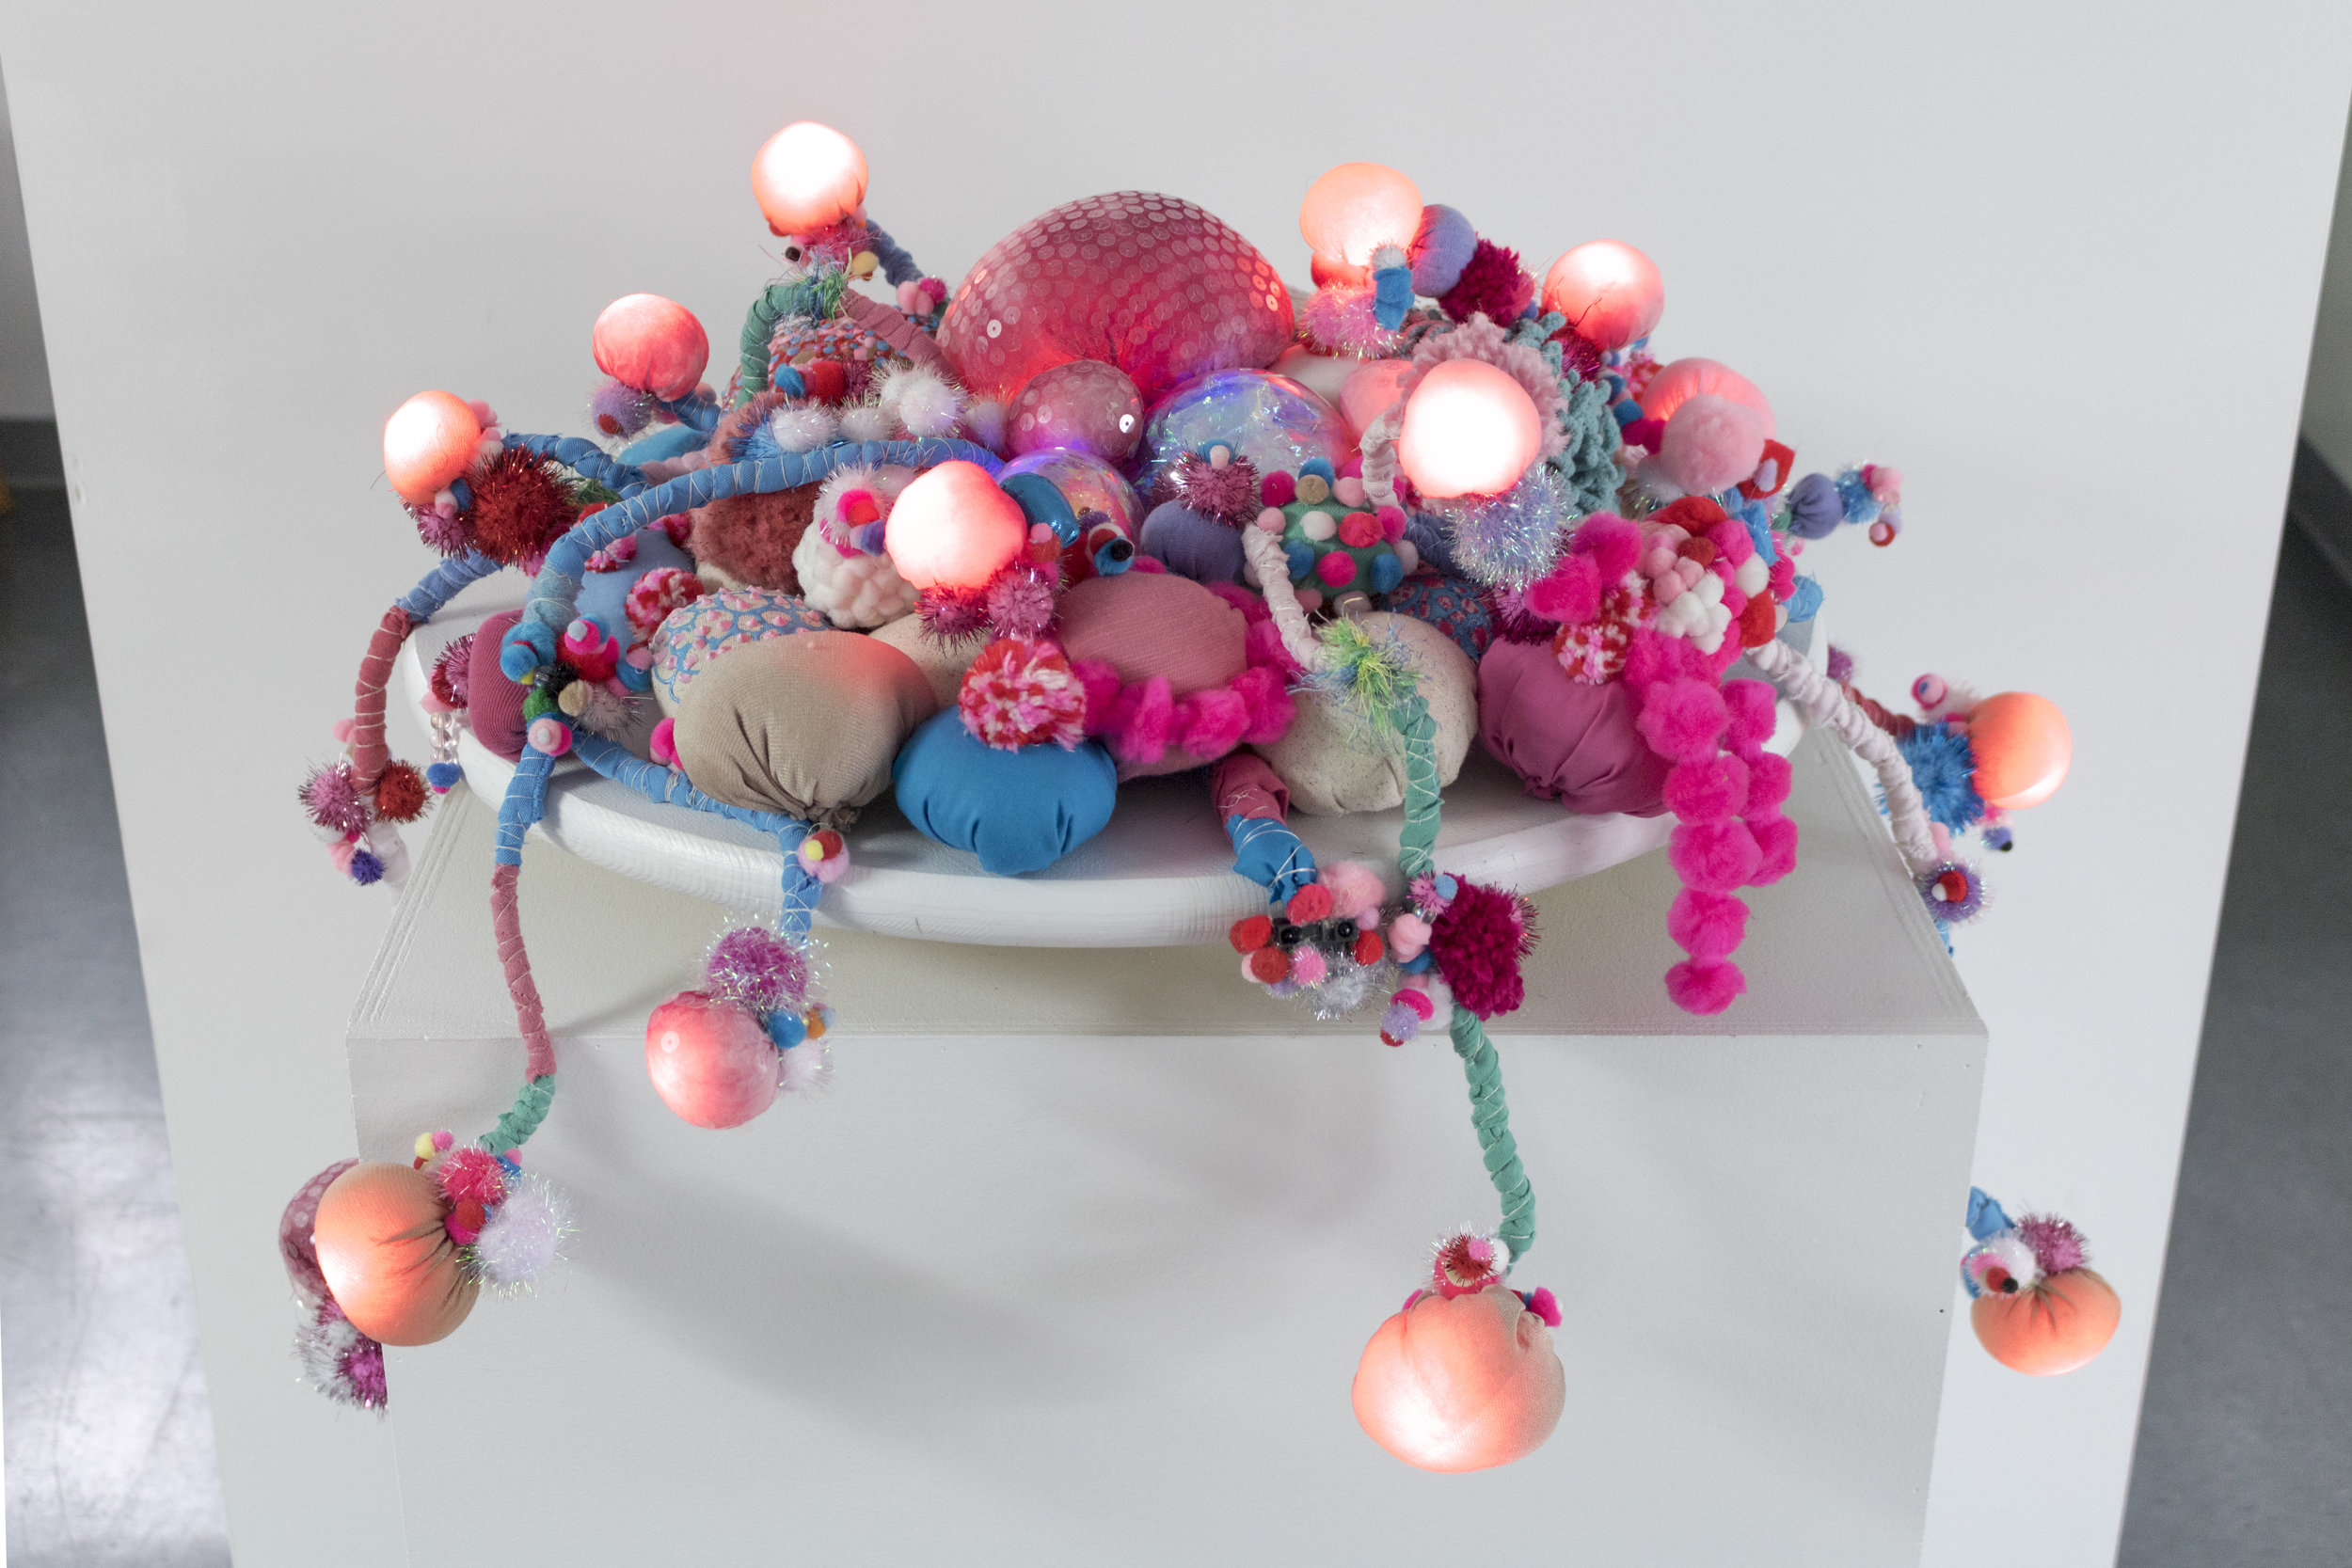 This collaboration between Lucas and Jan uses Arduino, coding, LEDs, and a distance sensor to give Jan's emroidery-hoop growths a bioluminescent quality. The creature has a glowing center that gradually pulses faster depending on the viewers distance from it. When the viewer is at a close enough range the tentacles all begin to light up in examination. Image courtesy of Lucas Stiegman.